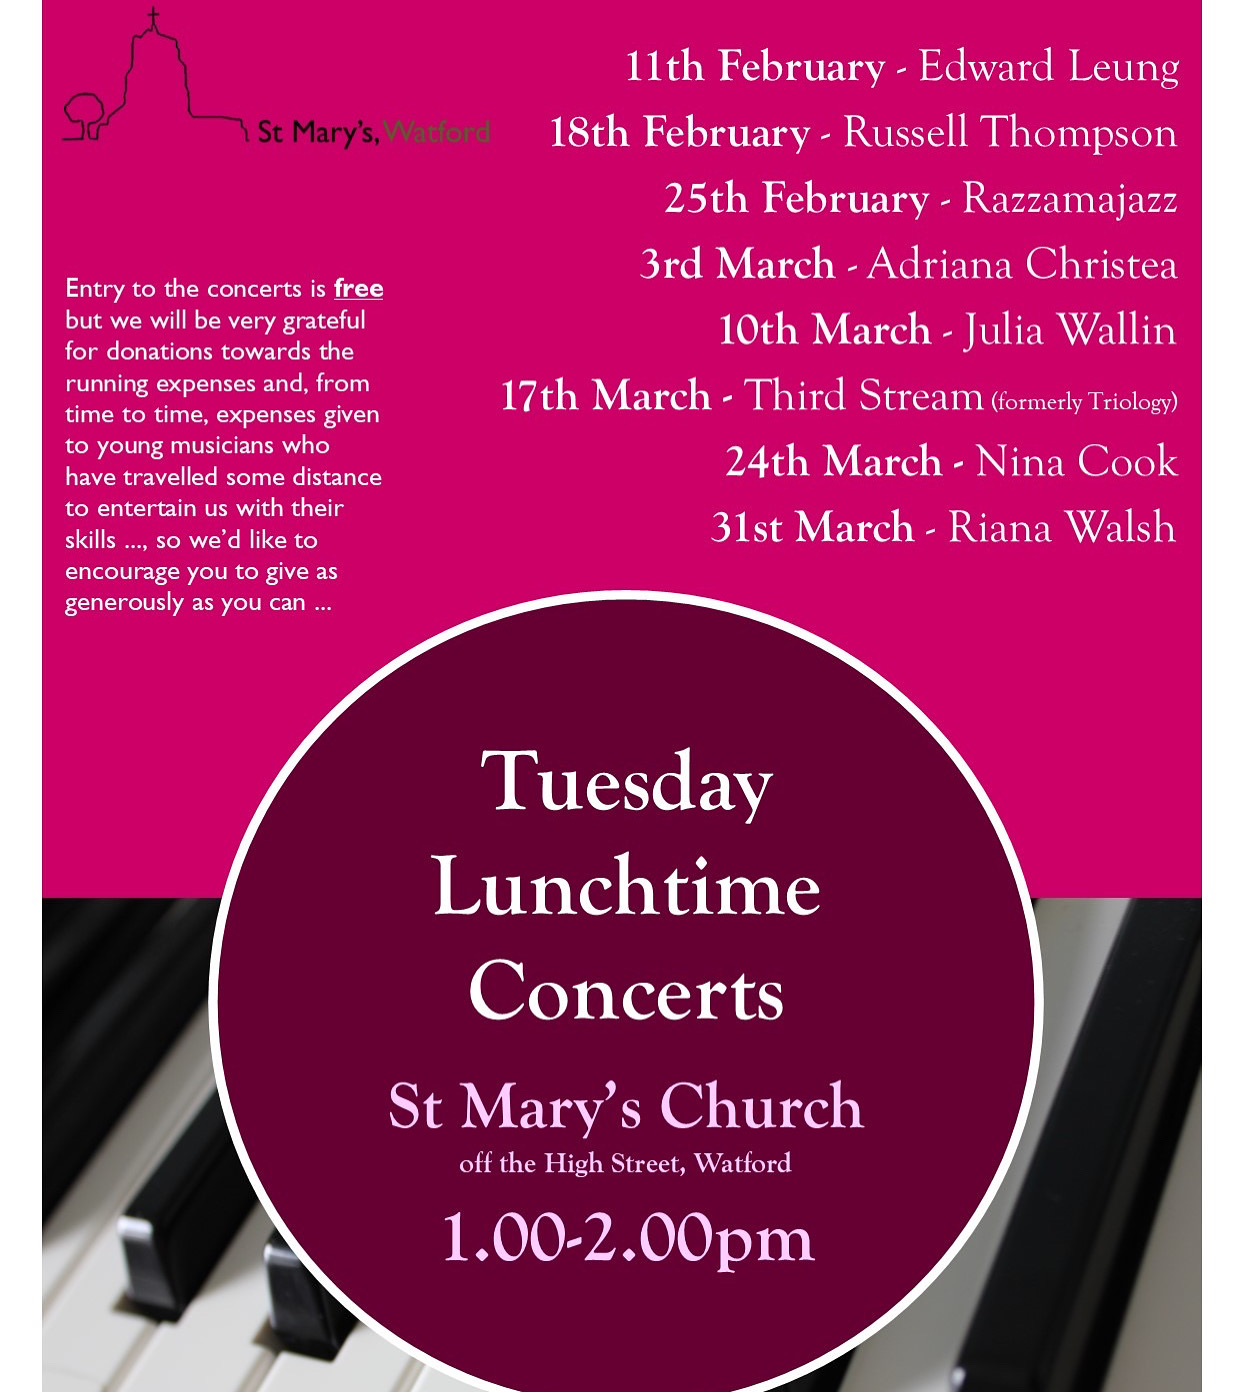 Tuesday Lunchtime Concerts at St Marys